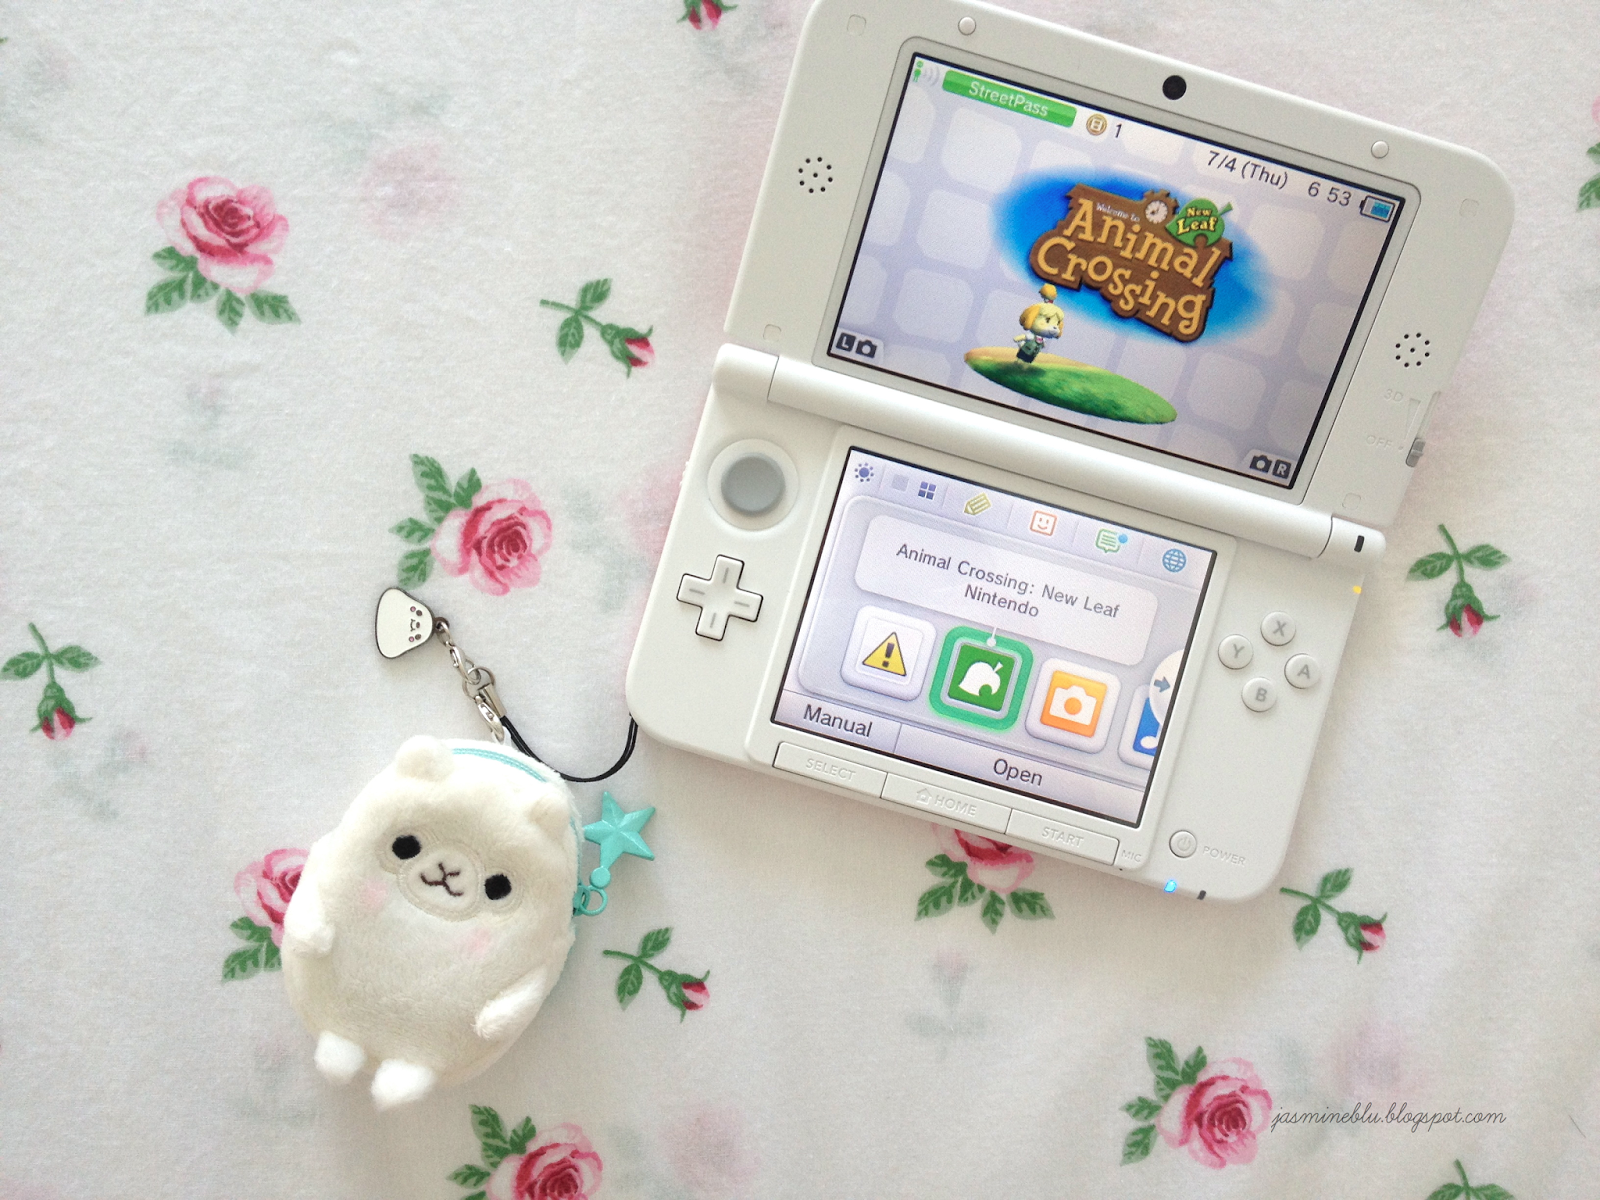 3ds Xl Animal Crossing New Leaf Review Animal Crossing 3ds Xl Nintendo